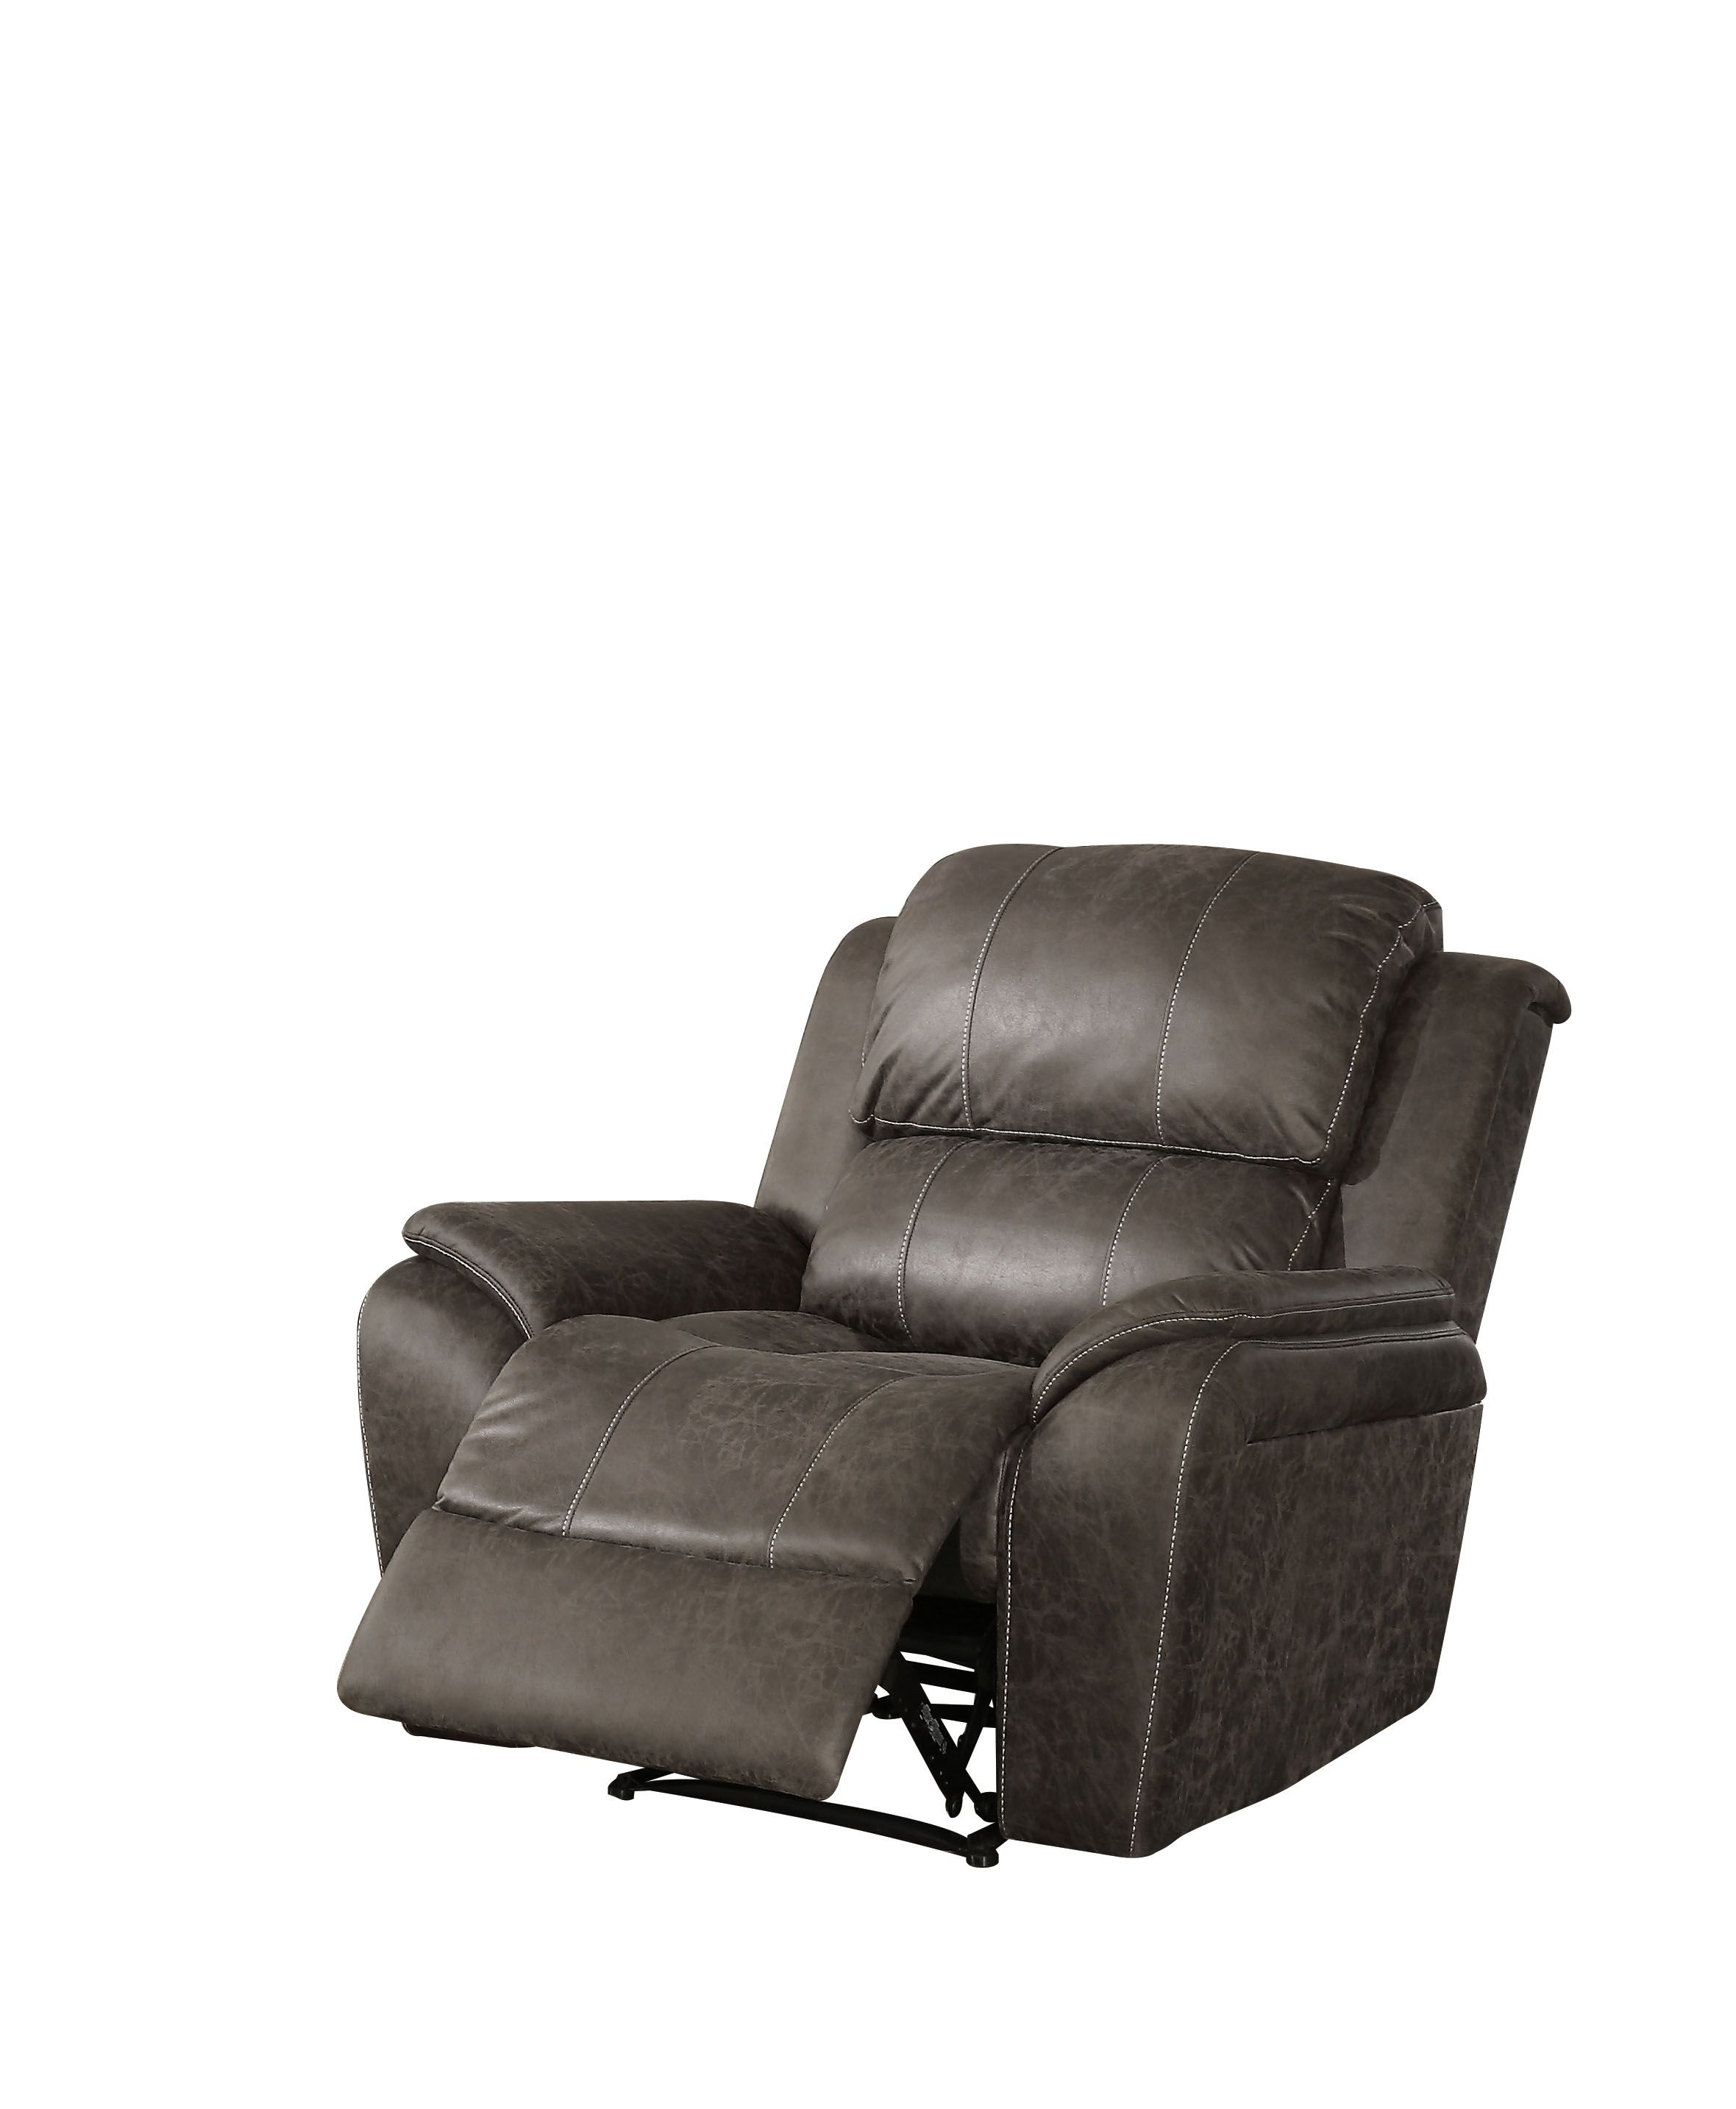 Awesome Acme Furniture Barnaby Gray Recliner Beatyapartments Chair Design Images Beatyapartmentscom